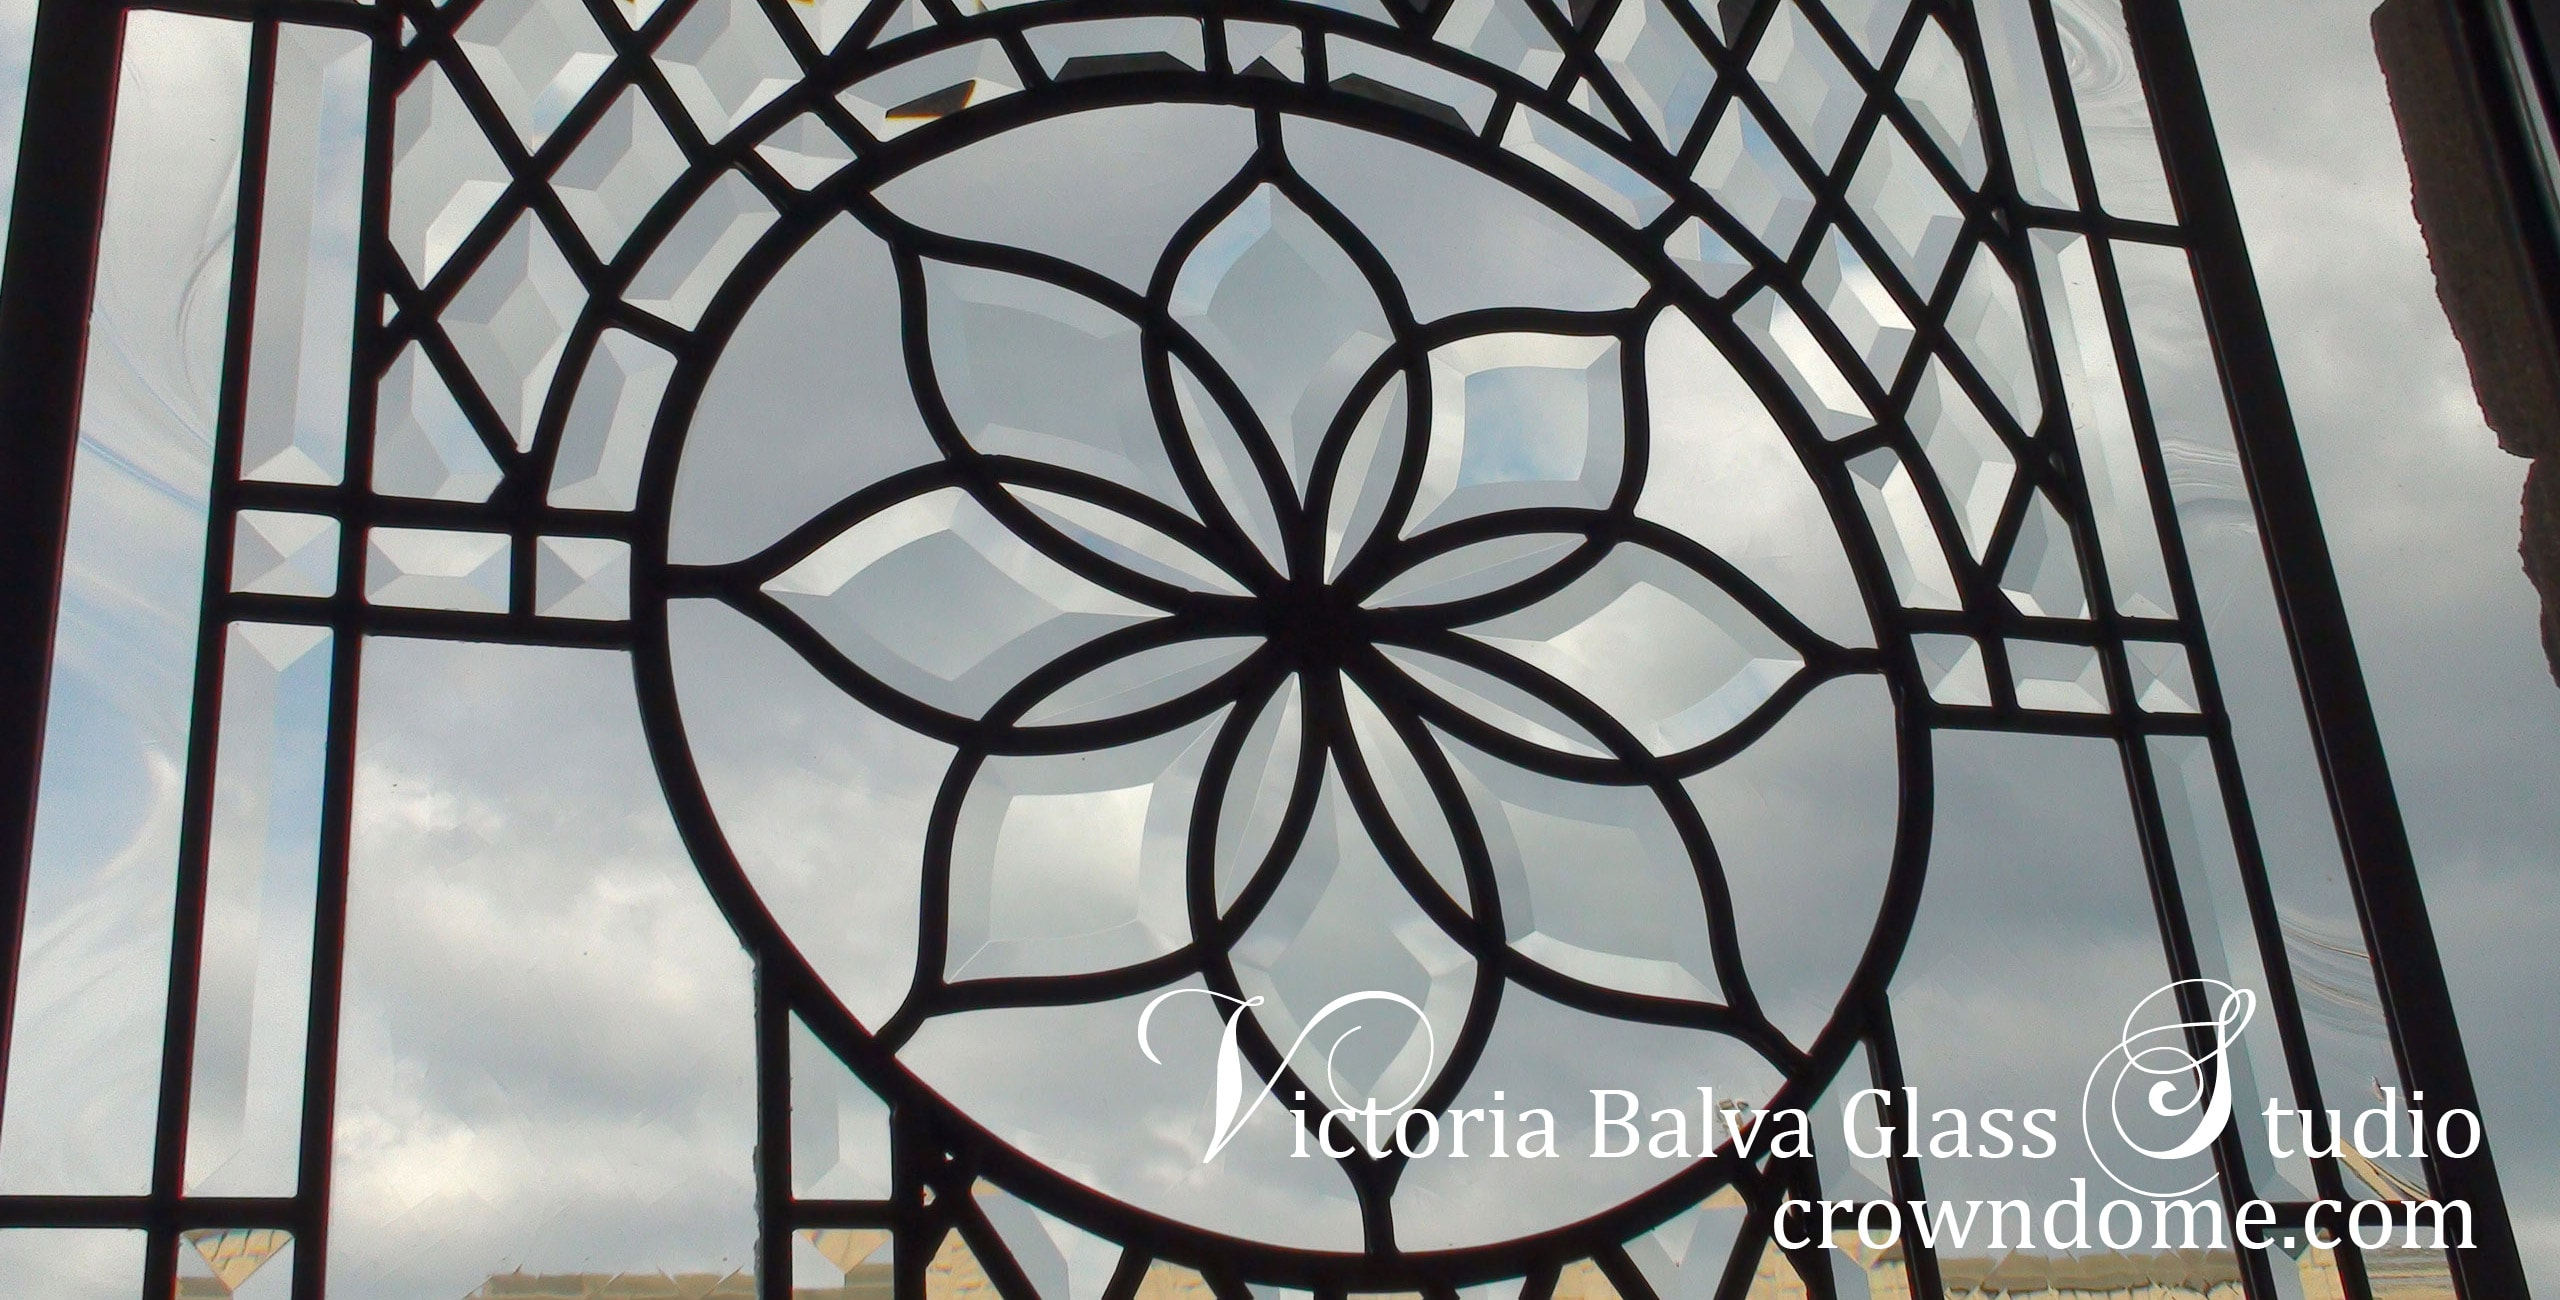 Custom made beveled leaded glass window Linda for a dining room to add privacy to space. Clear beveled glass, intricate line work design by glass artist Victoria Balva